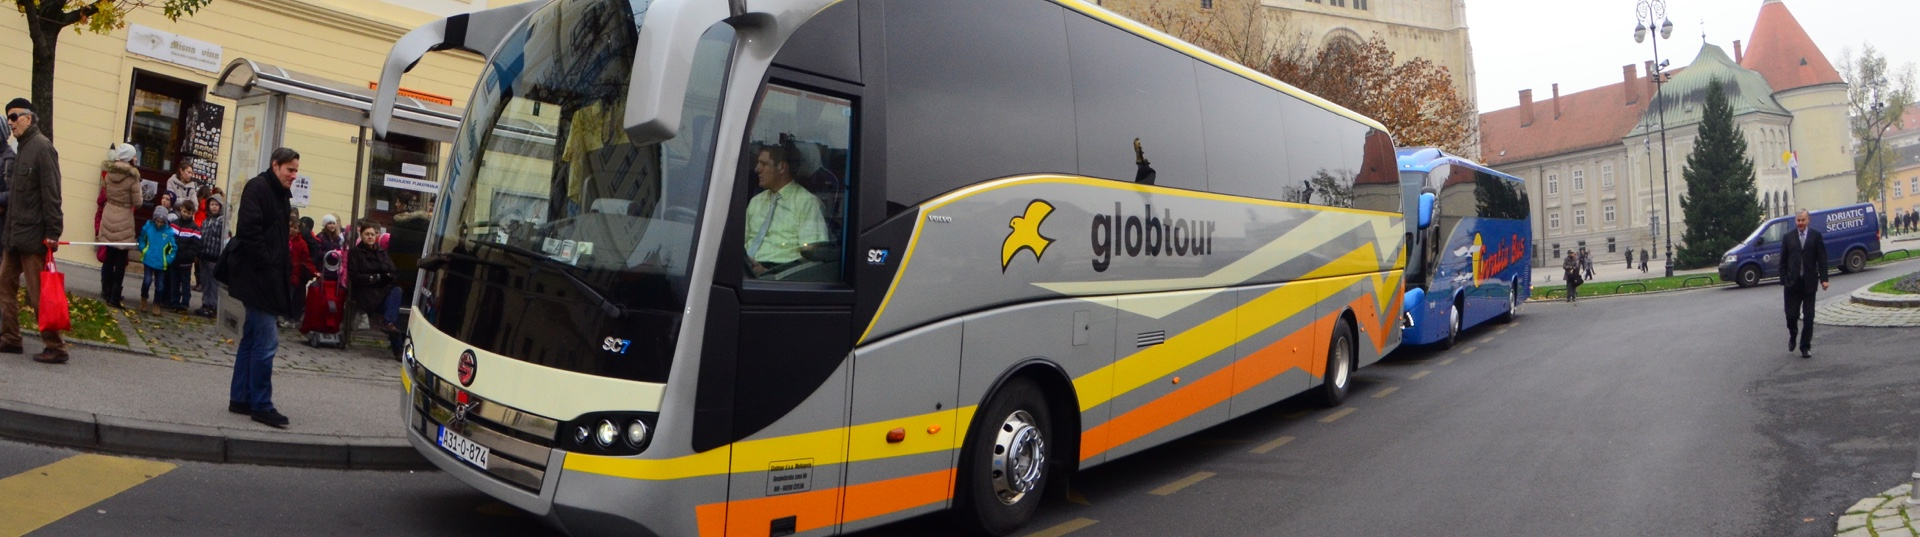 Globtour Timetable Schedule For Routes Operated By Globtour